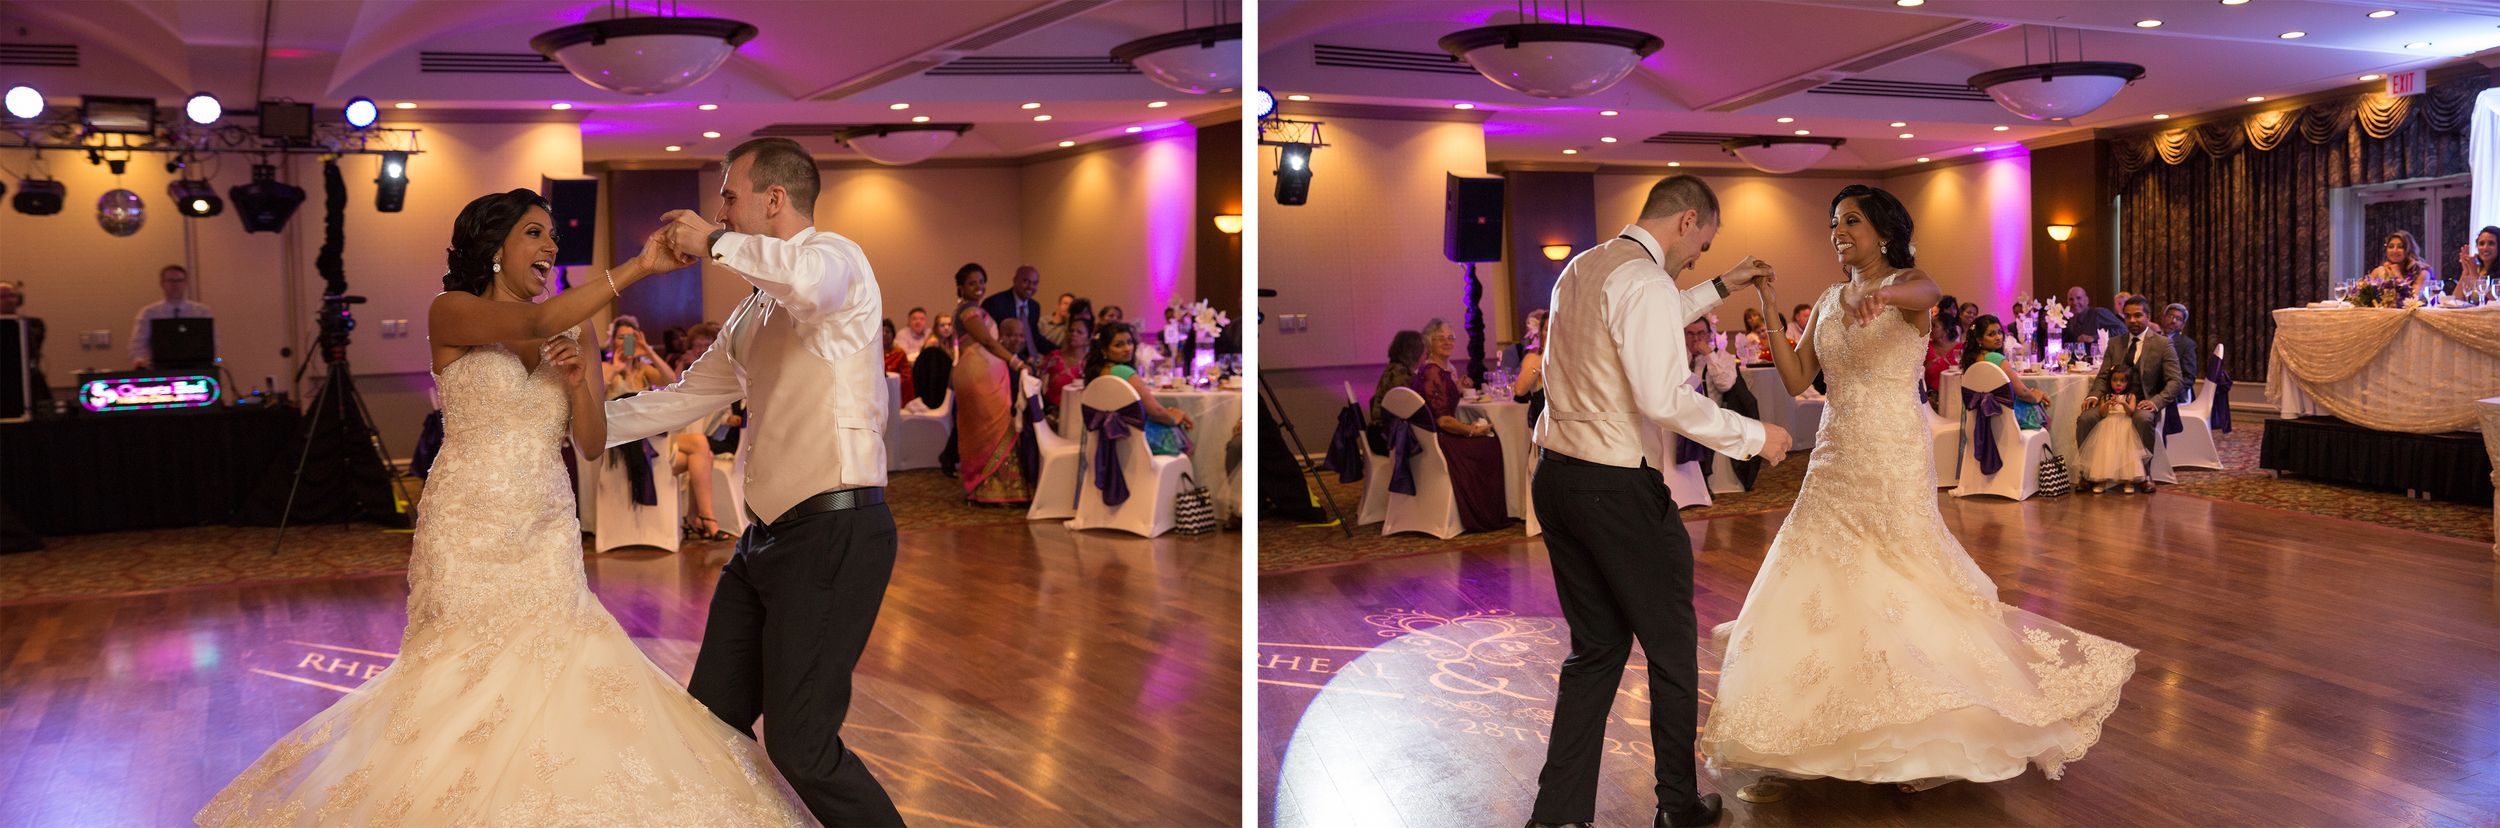 CalgaryWeddingPhotography_ParrishHousePhotos_JR08.jpg